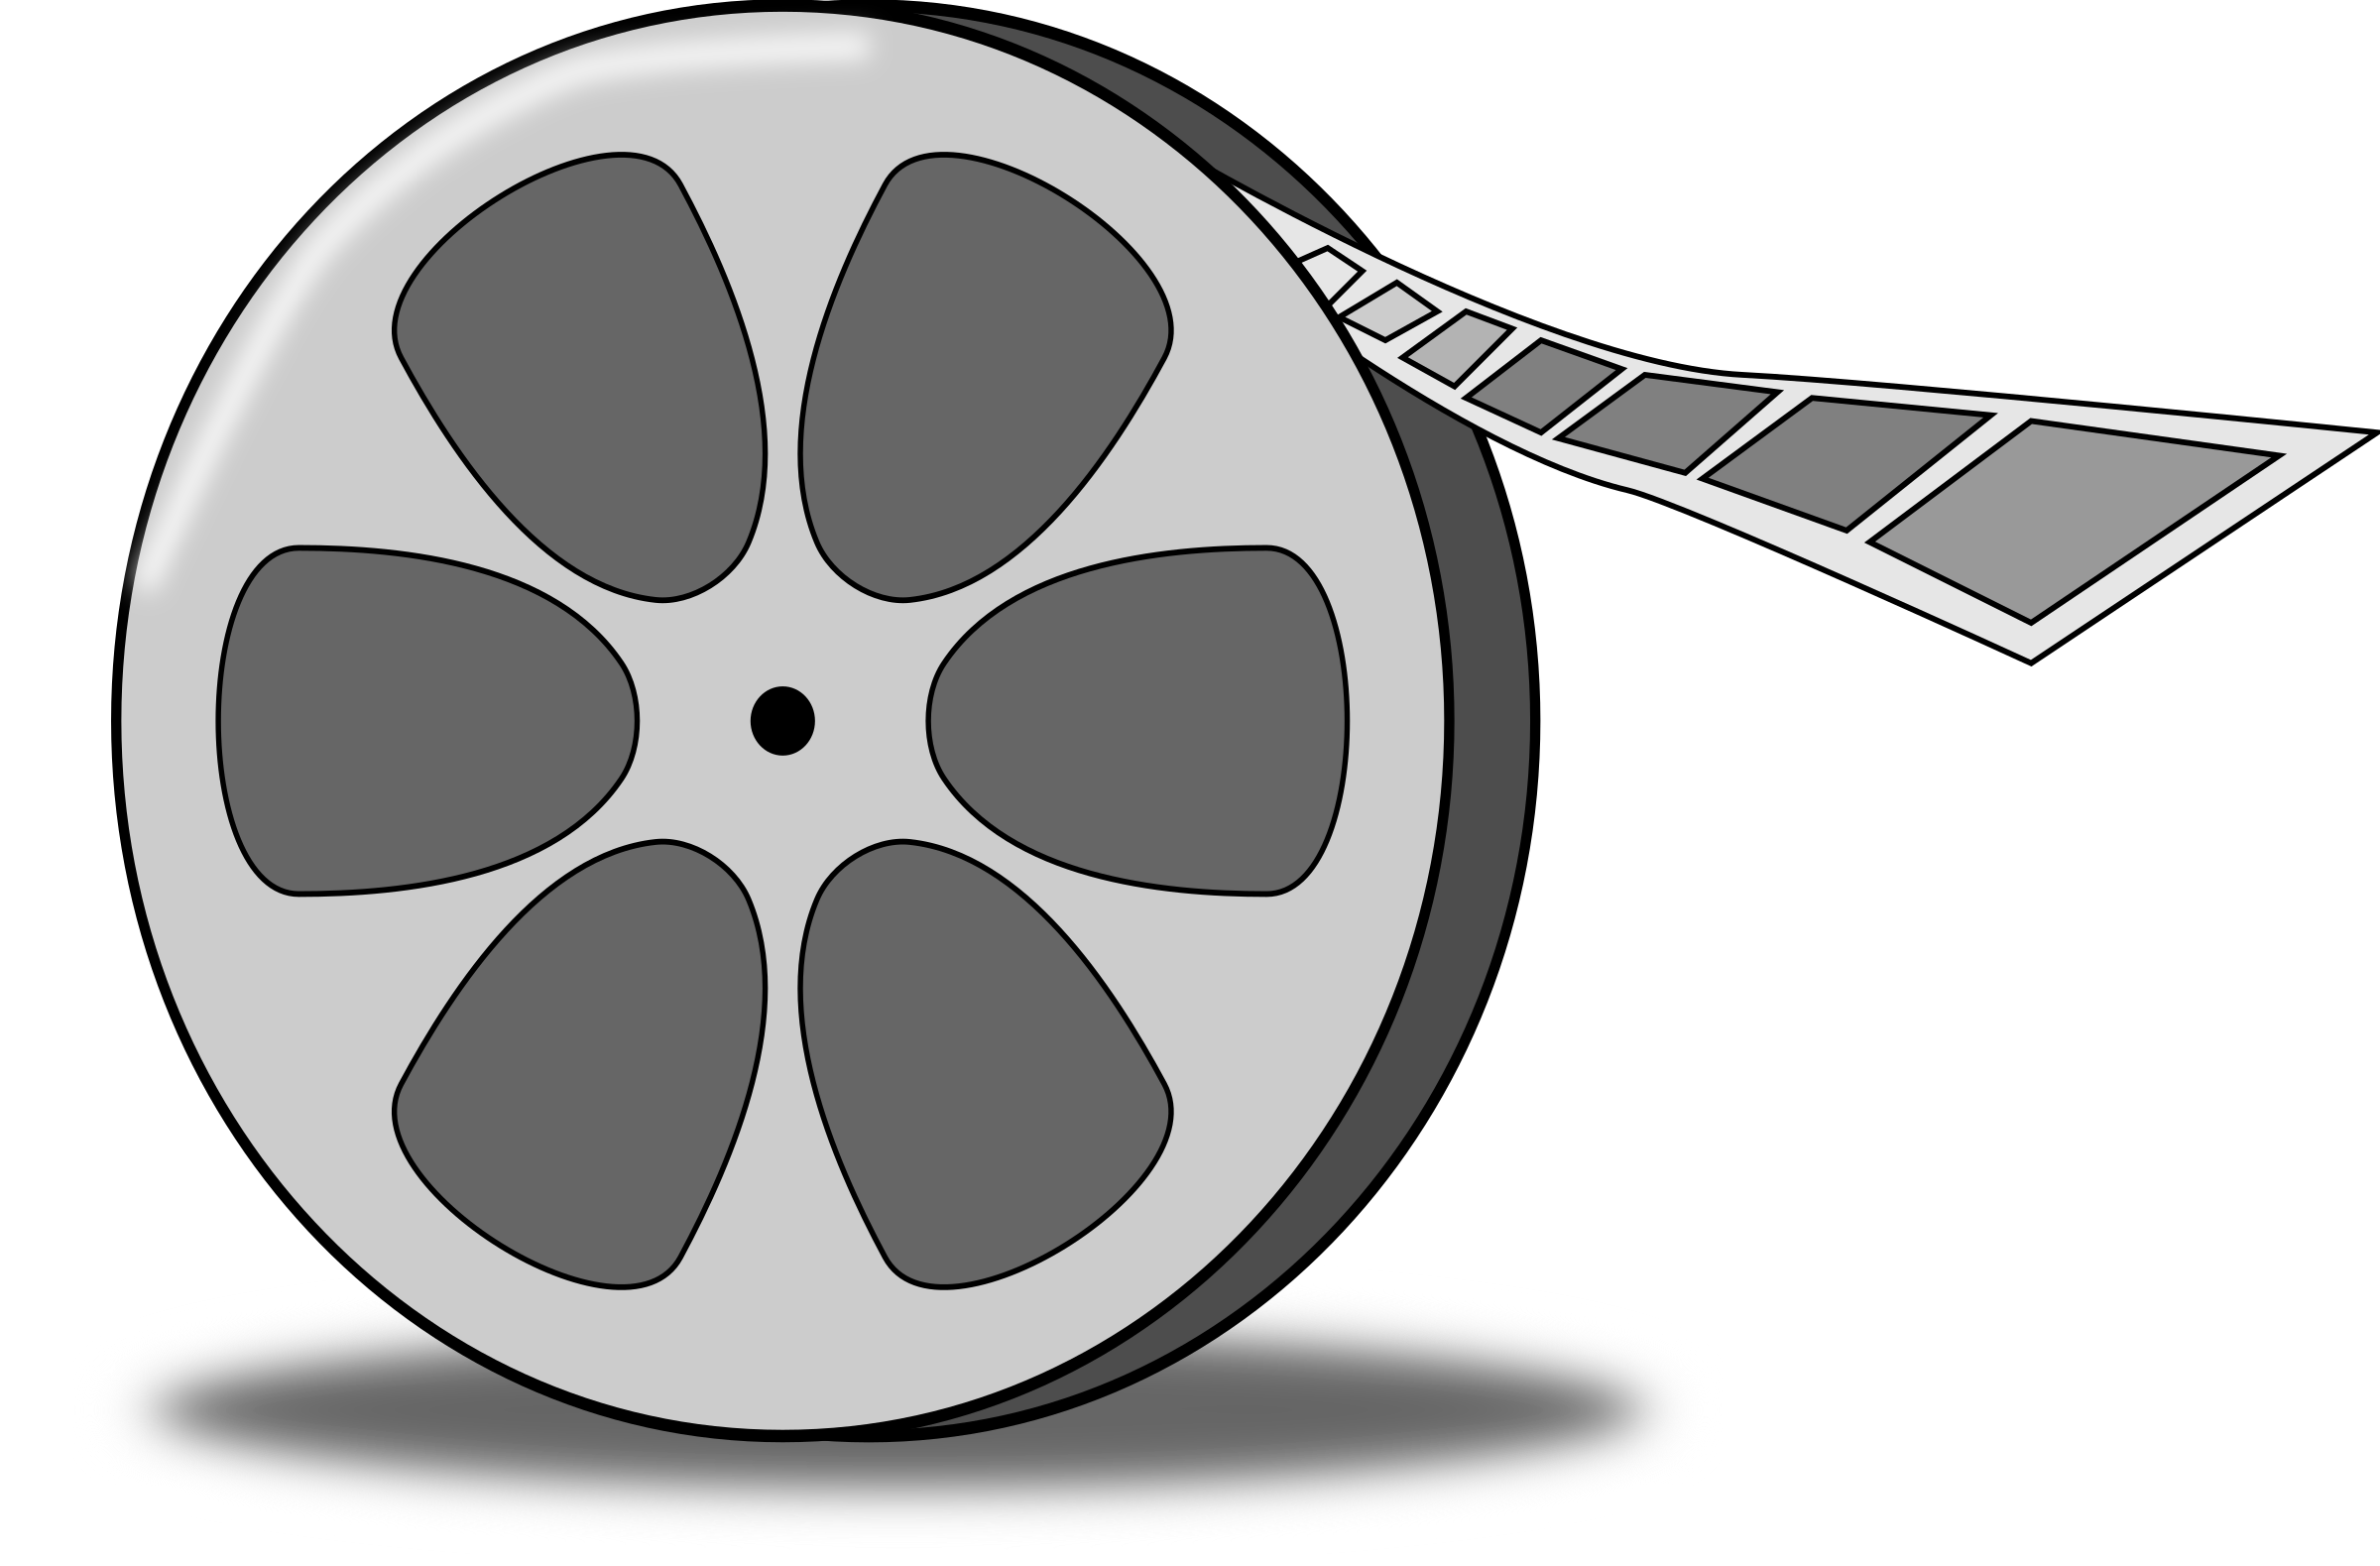 Film Reel by algotruneman